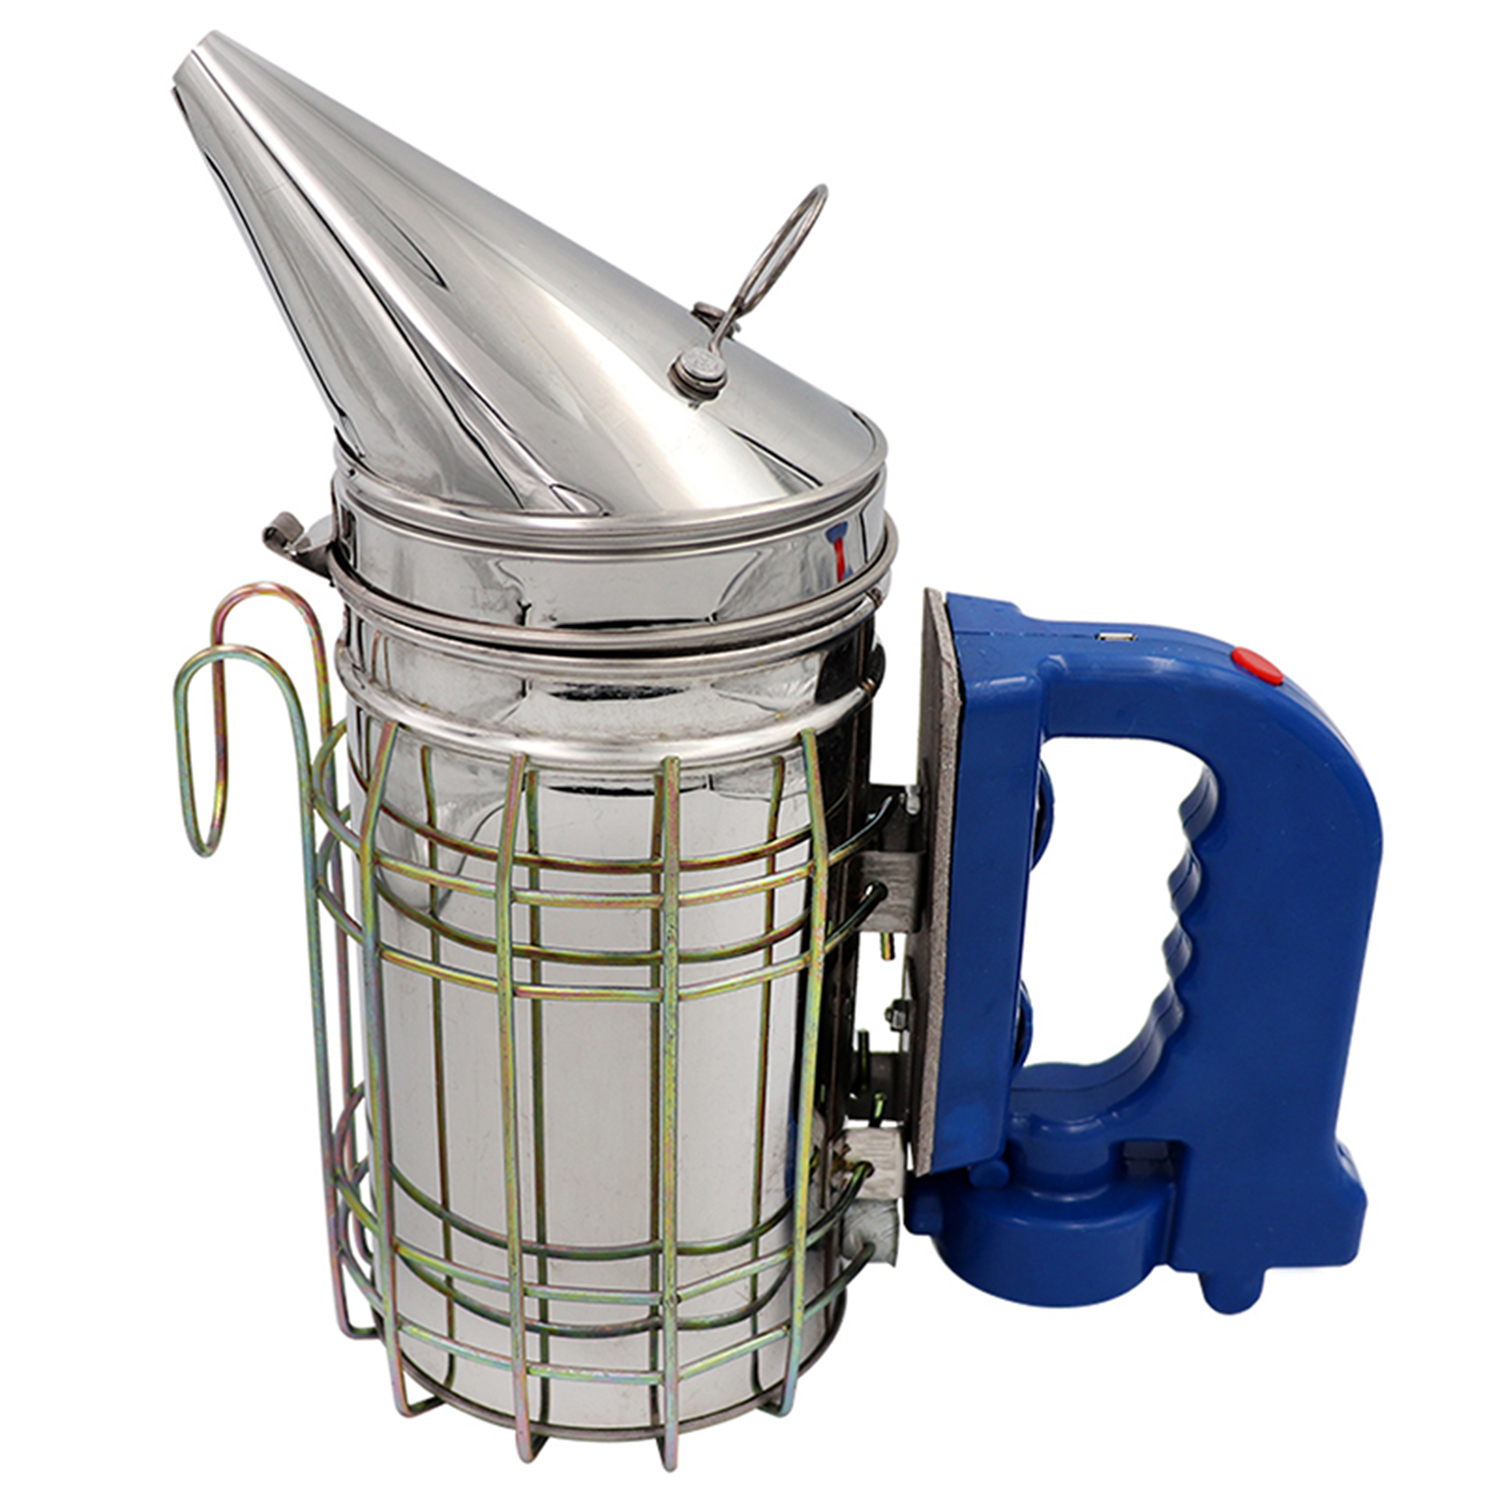 Electric Bee Hive Smoker Stainless Steel with Heat Shield Beekeeping Equipment